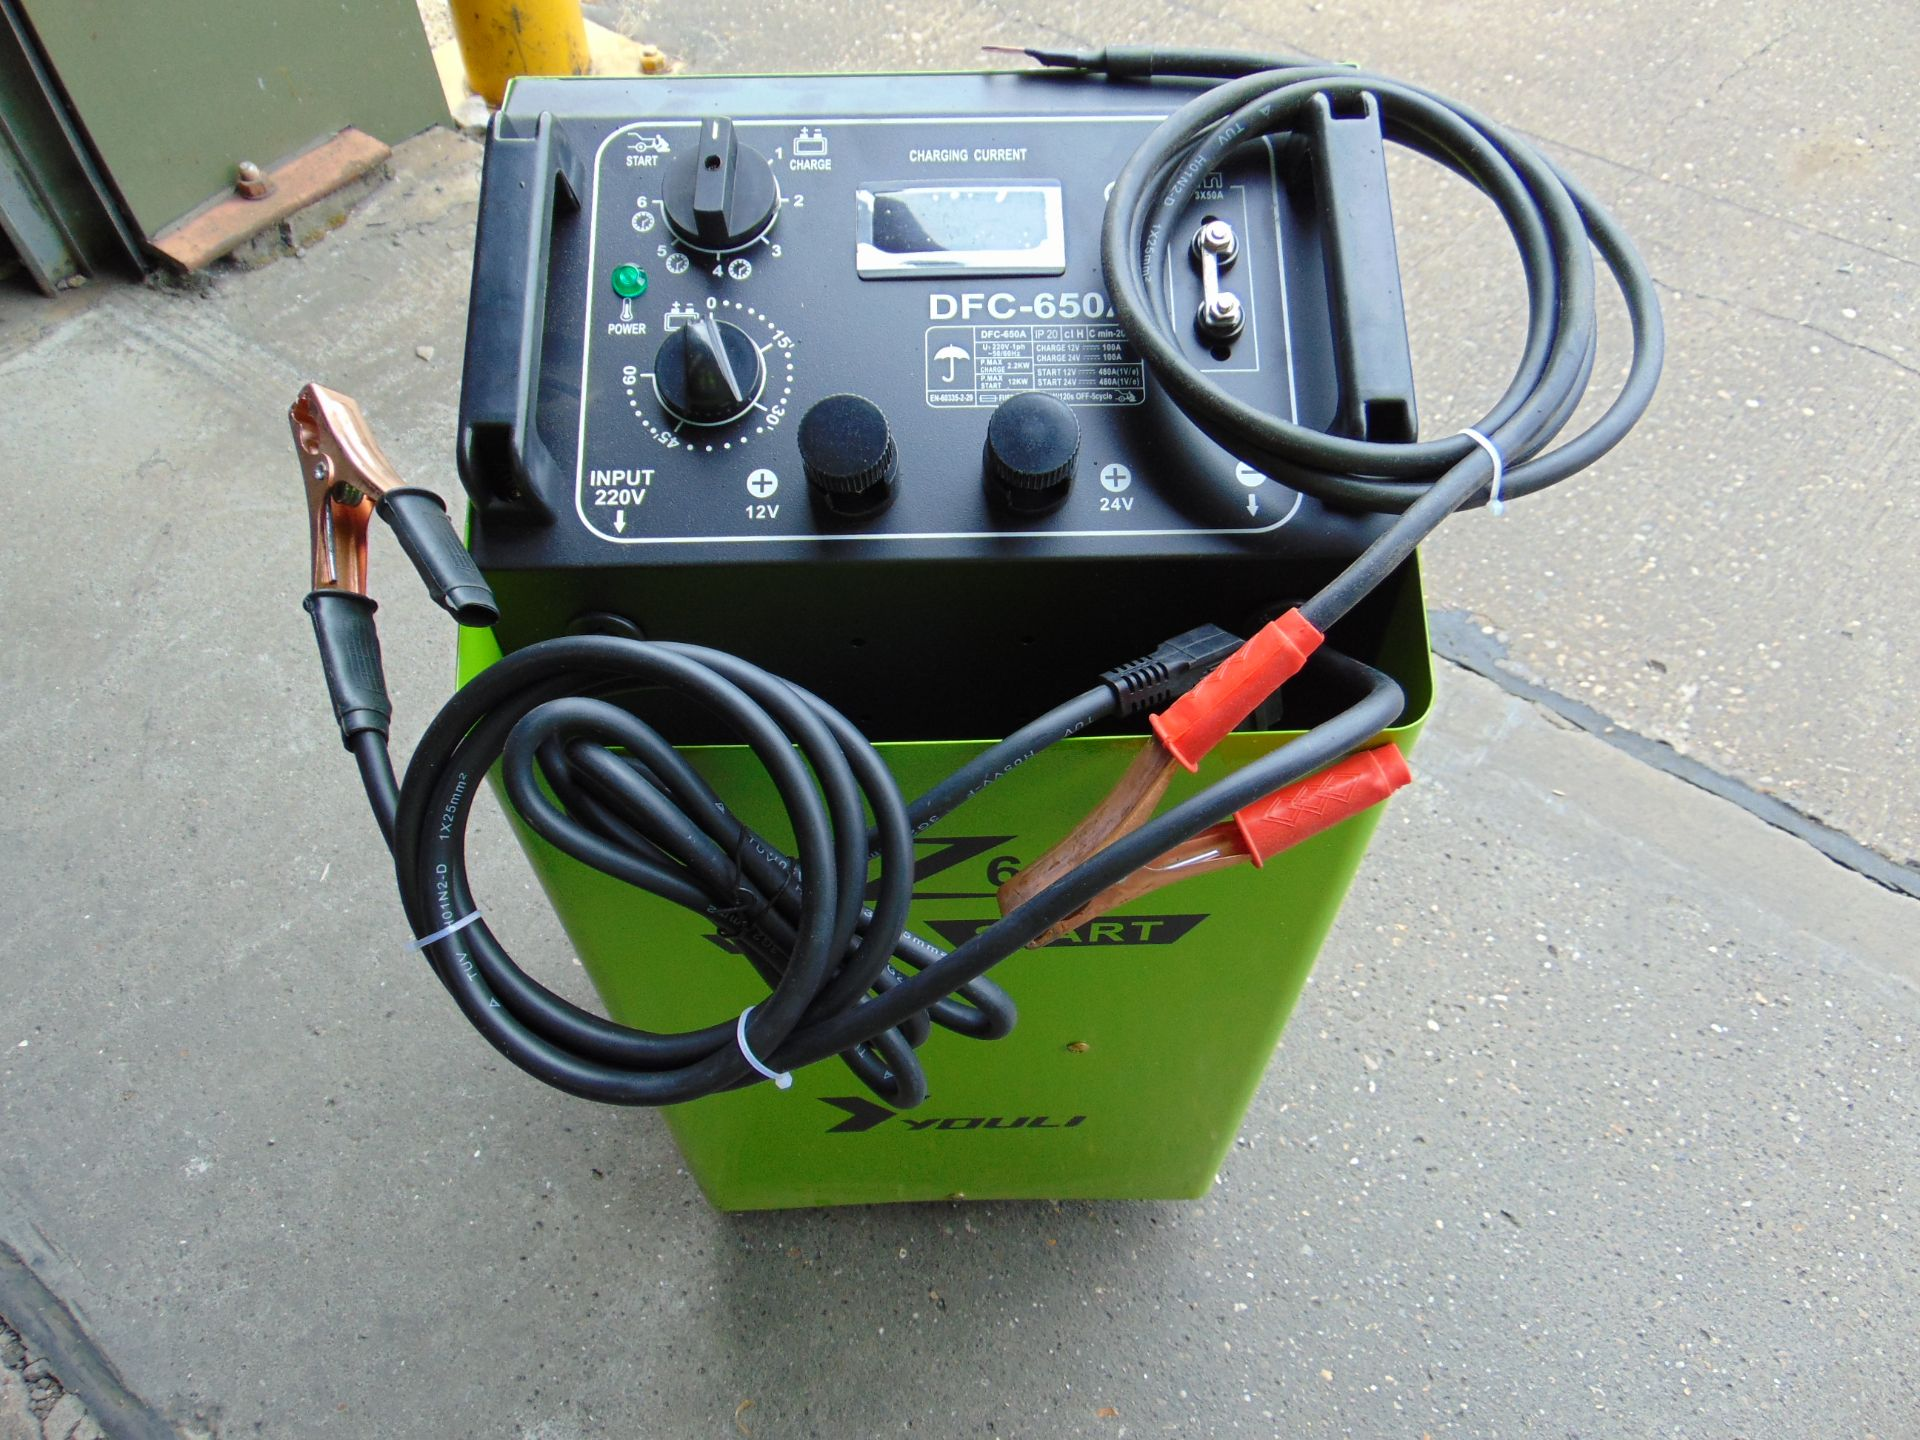 Lot 33 - ** BRAND NEW ** Youli DFC-650A 12/24V Vehicle Battery Charger/Starter